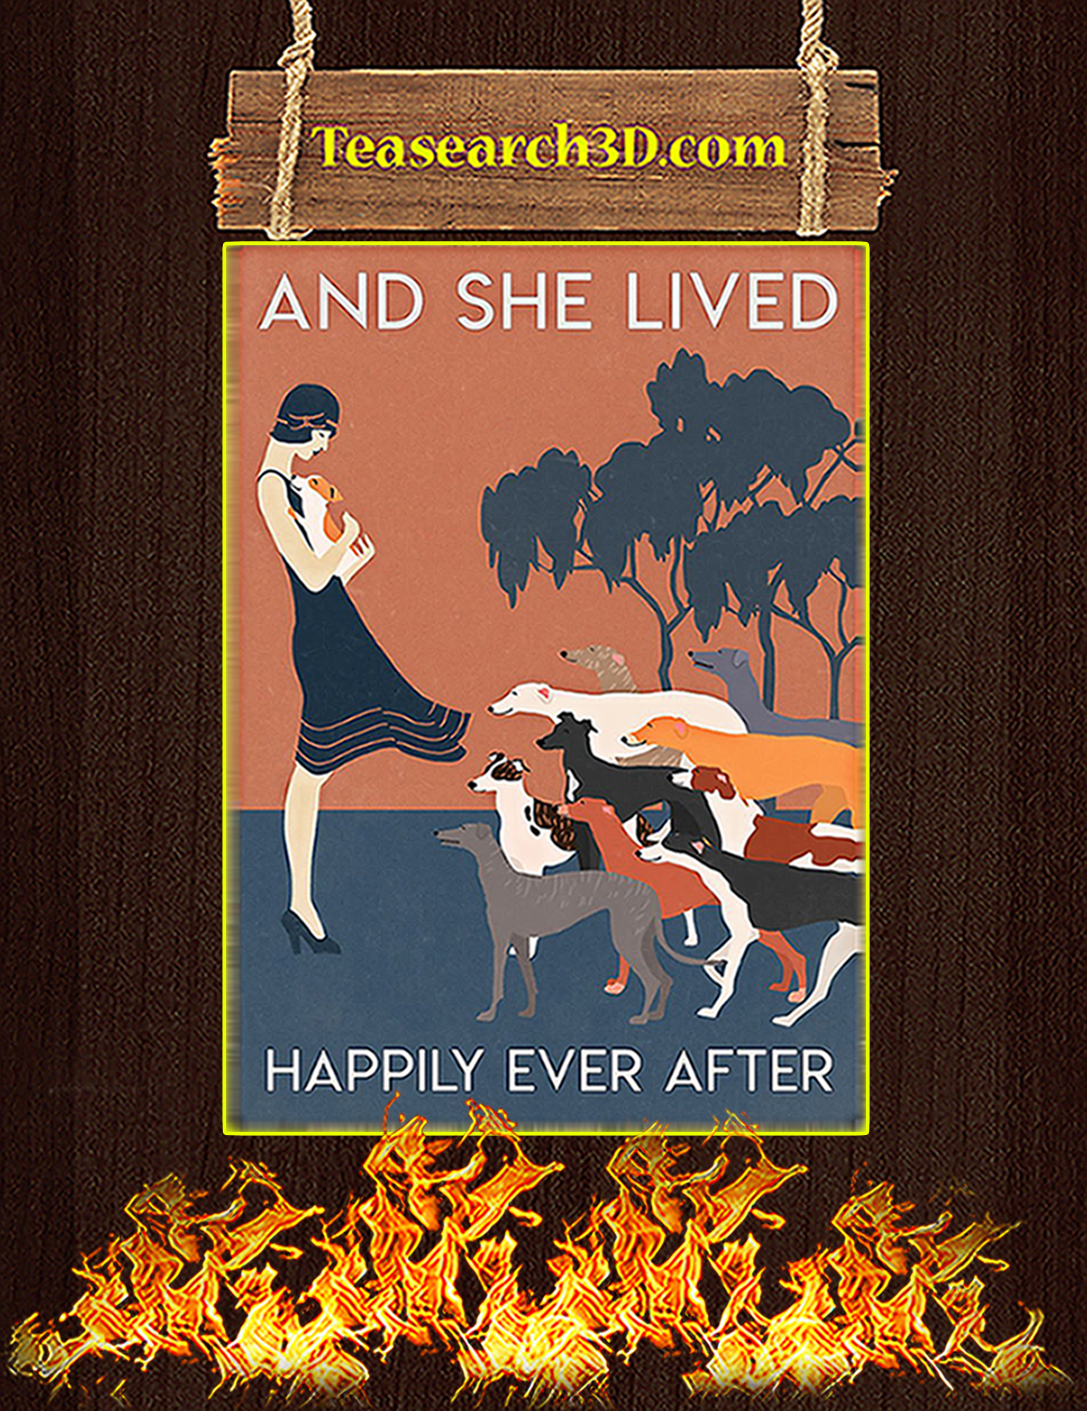 Greyhound And she lived happily ever after poster A2